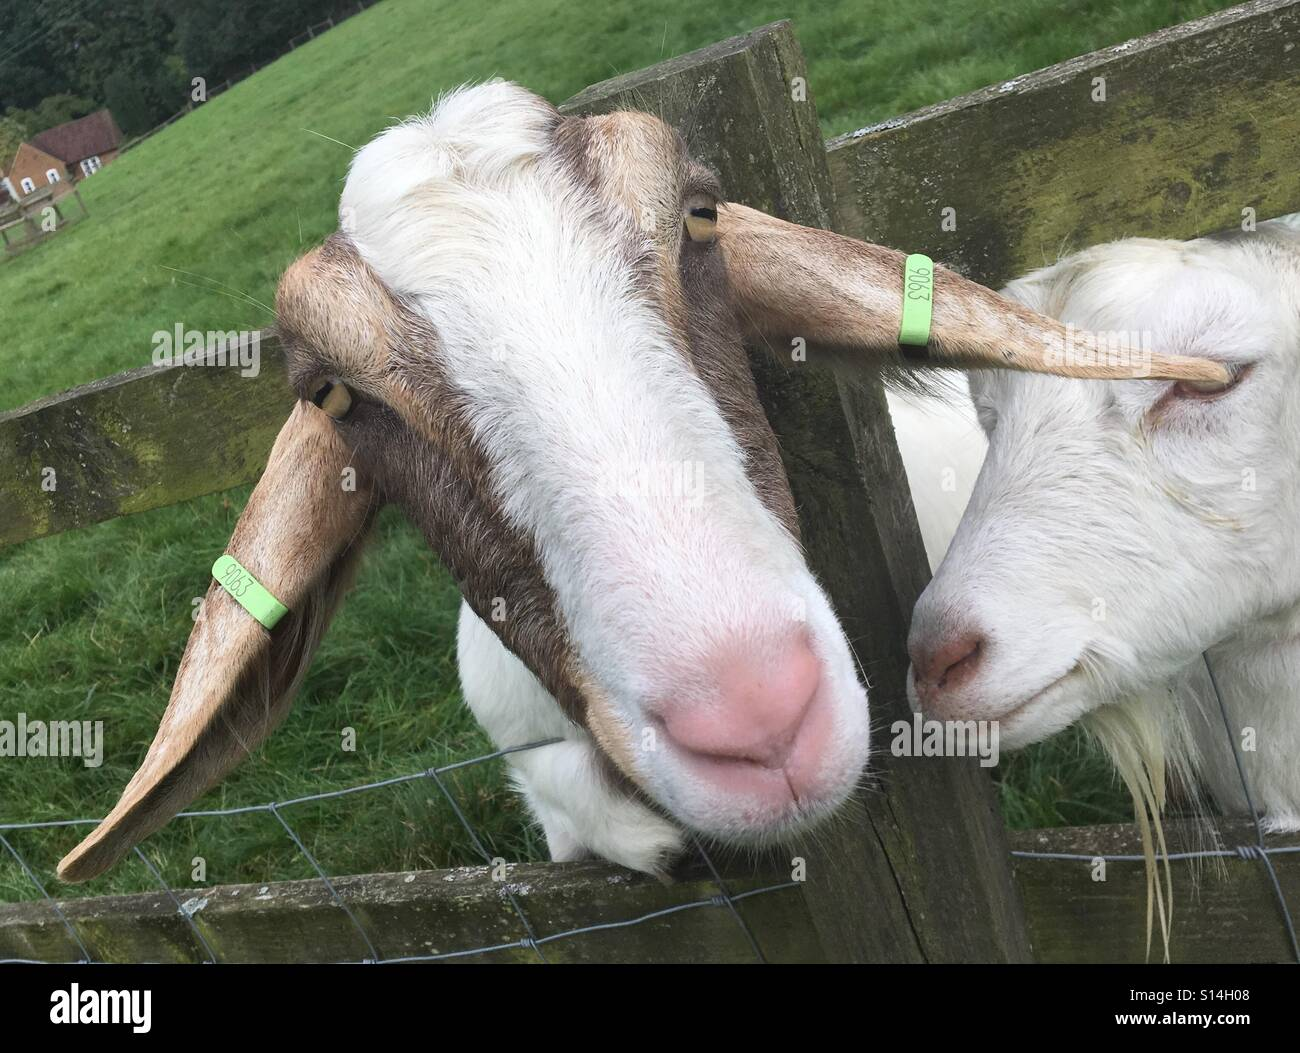 Boer nanny goat and friend. - Stock Image